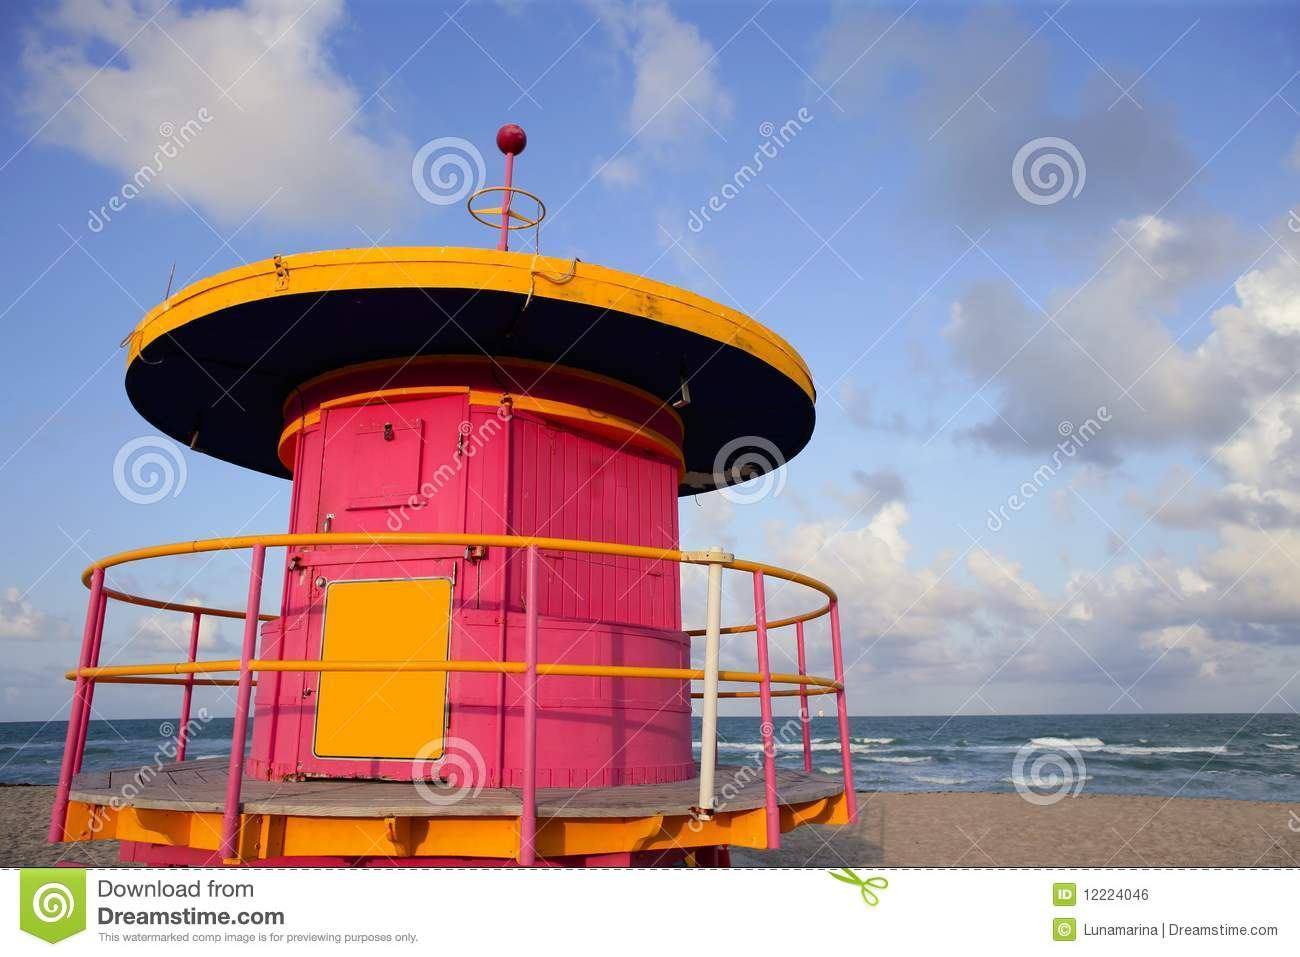 Lifeguard Houses In Miami Beach Stock Photo - Image of safe